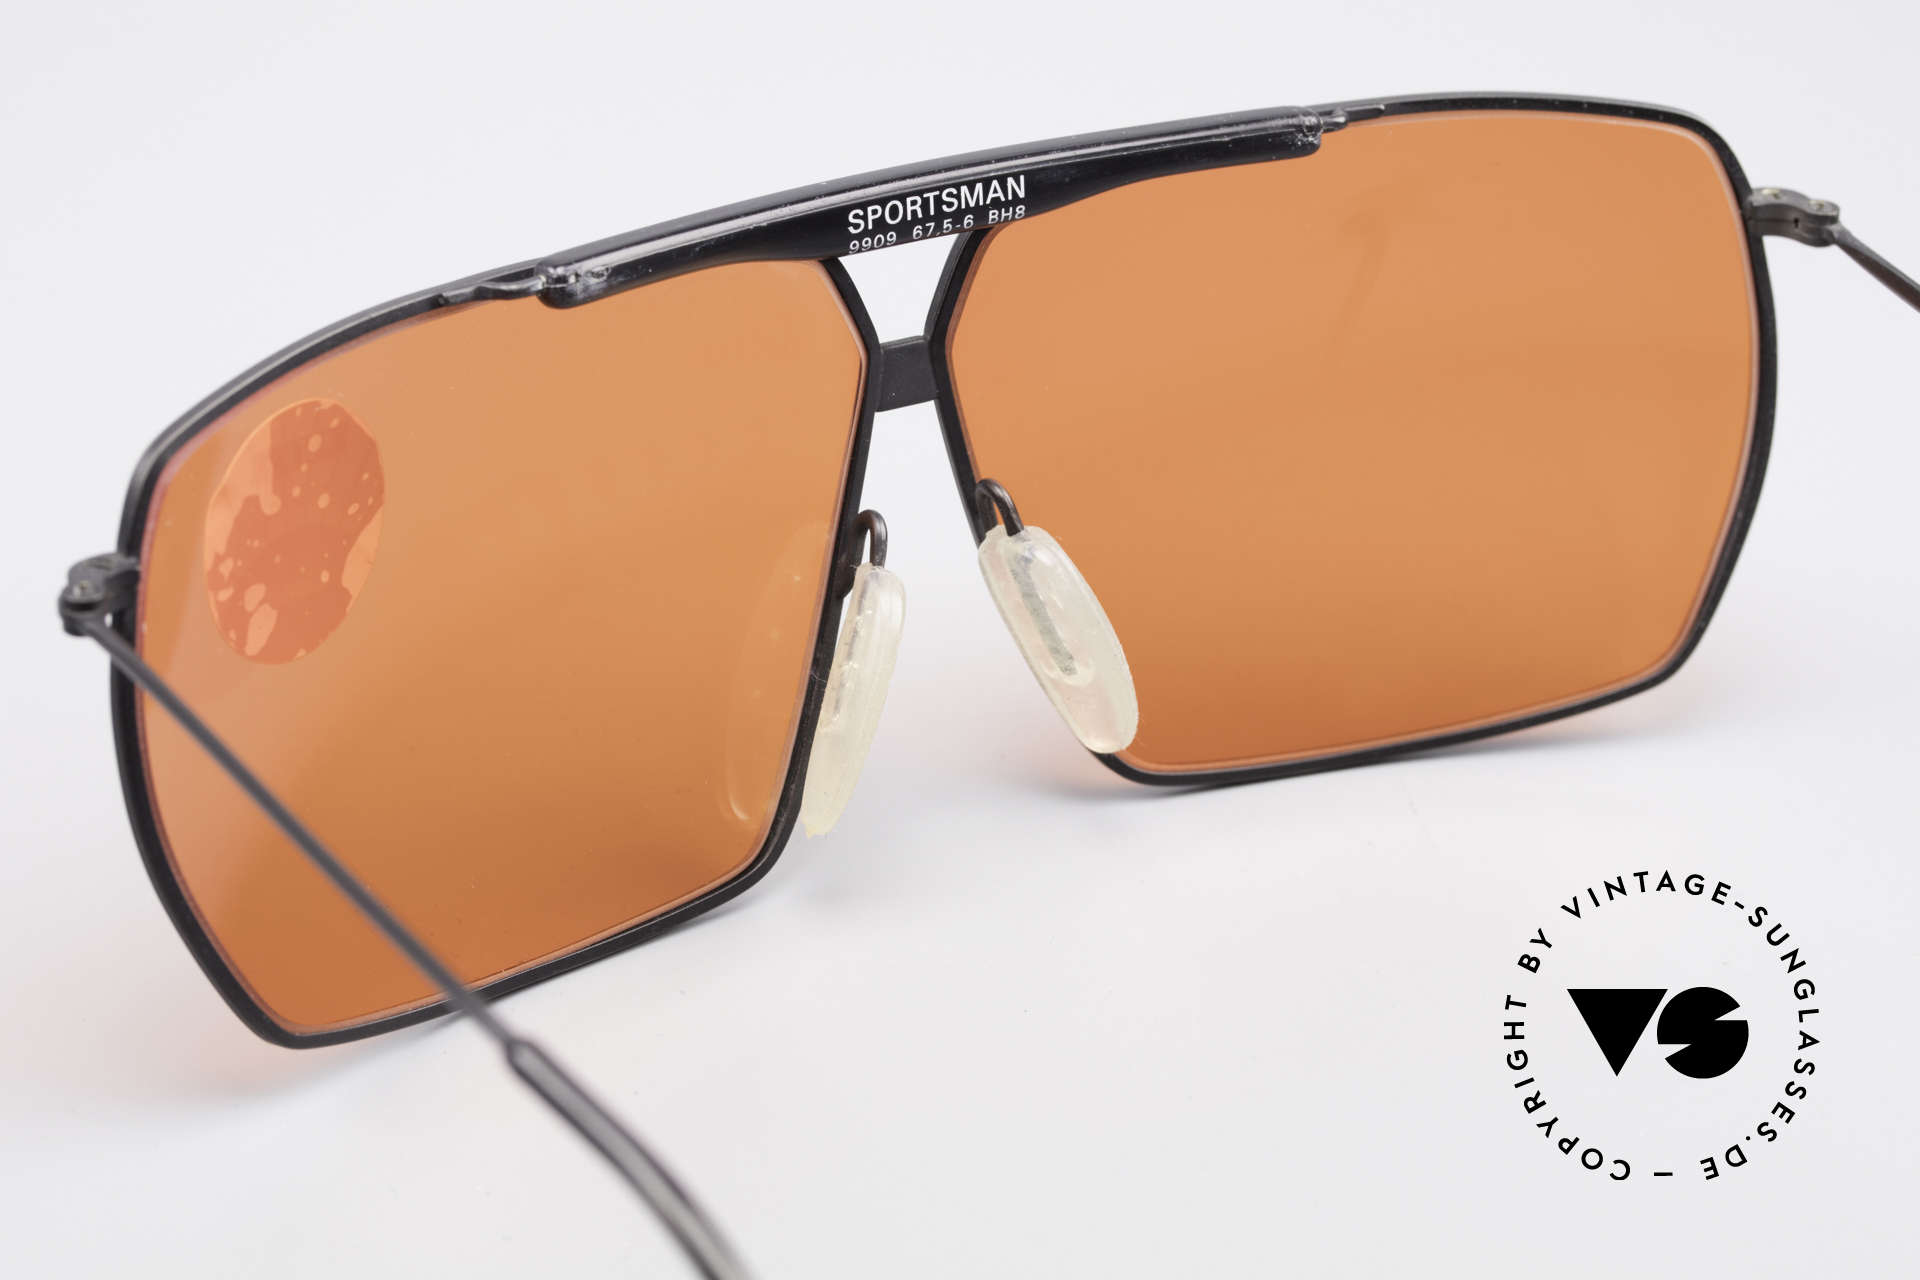 Zeiss 9909 XL Vintage Sunglasses Sport, NO RETRO shades; but an old original from the 1980's, Made for Men